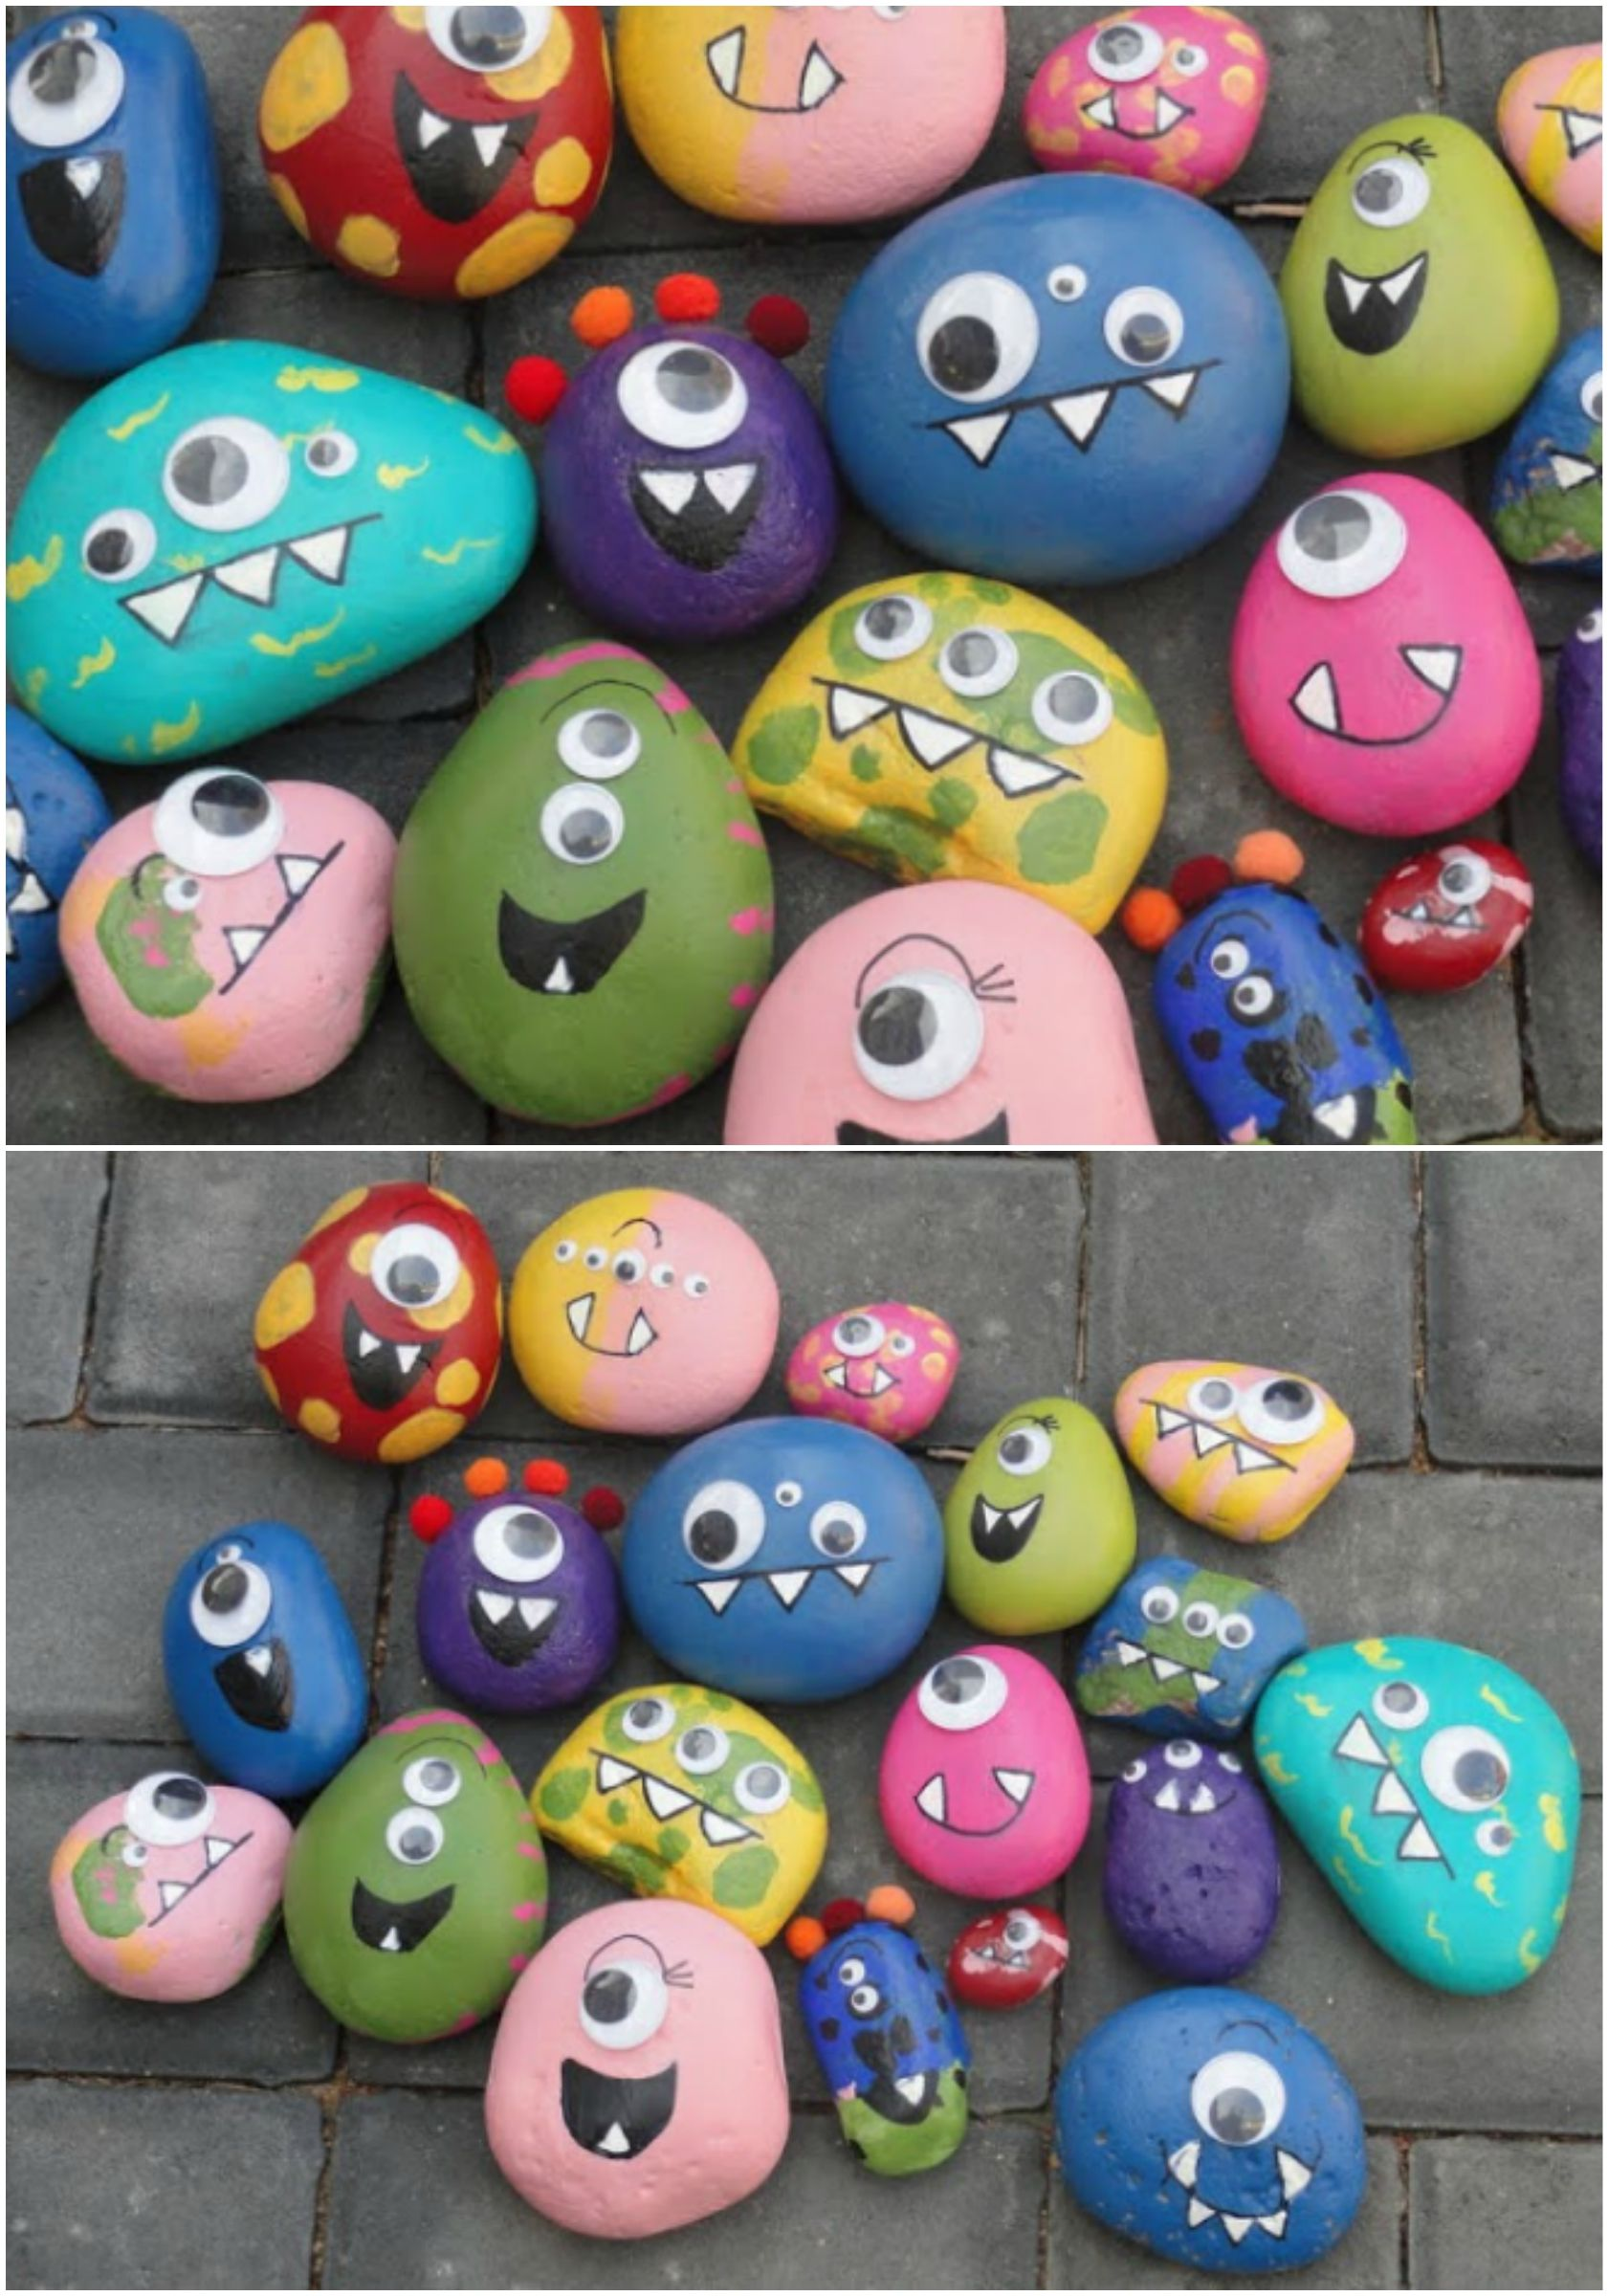 These happy monster rocks would brighten up any garden! Cute DIY project to get Dennis smiling (and keep him busy…) on a rainy day. -   25 diy rock garden ideas